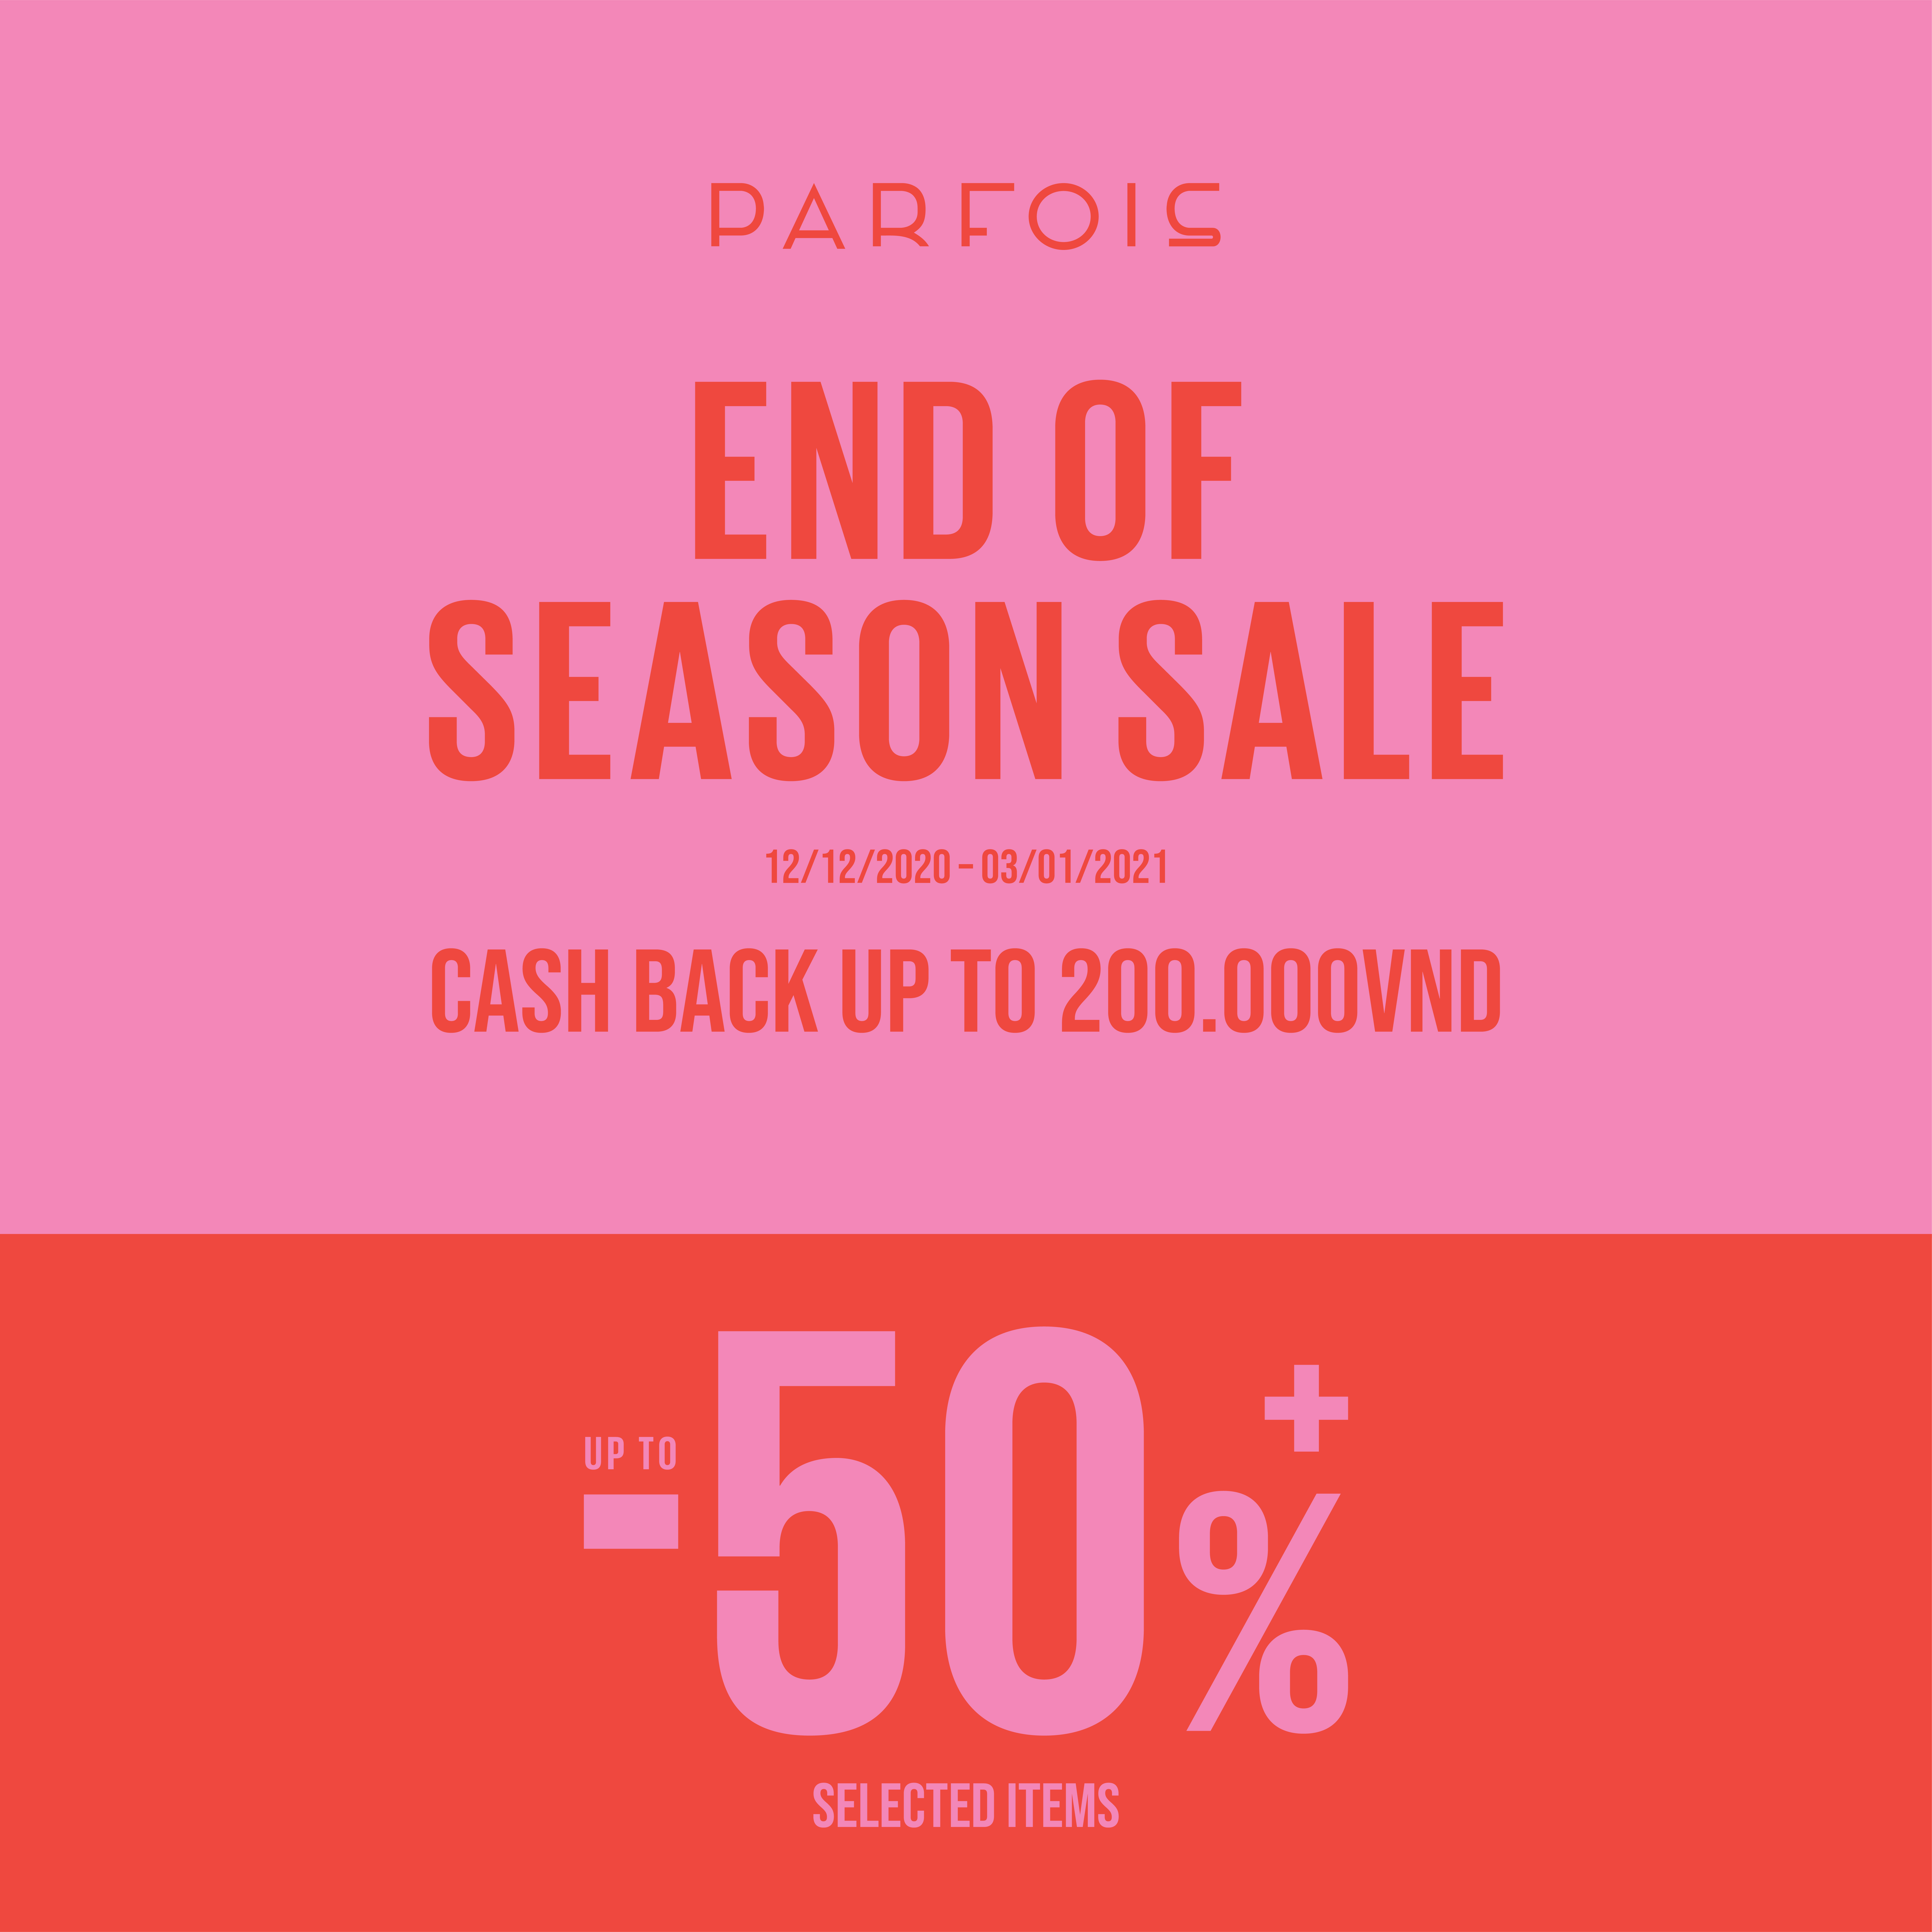 PARFOIS SALE UP TO 50%++